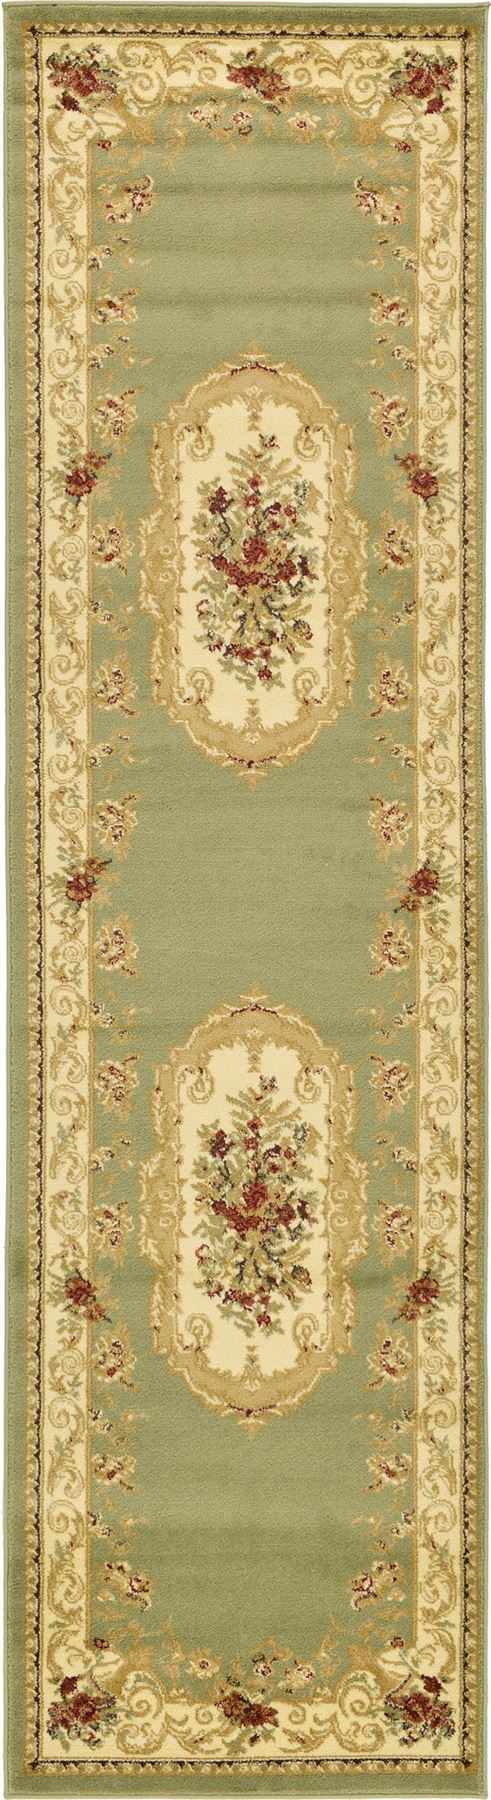 Oriental-Large-Area-Rug-Square-Traditional-Country-Round-Carpet-Medallion-Small thumbnail 30